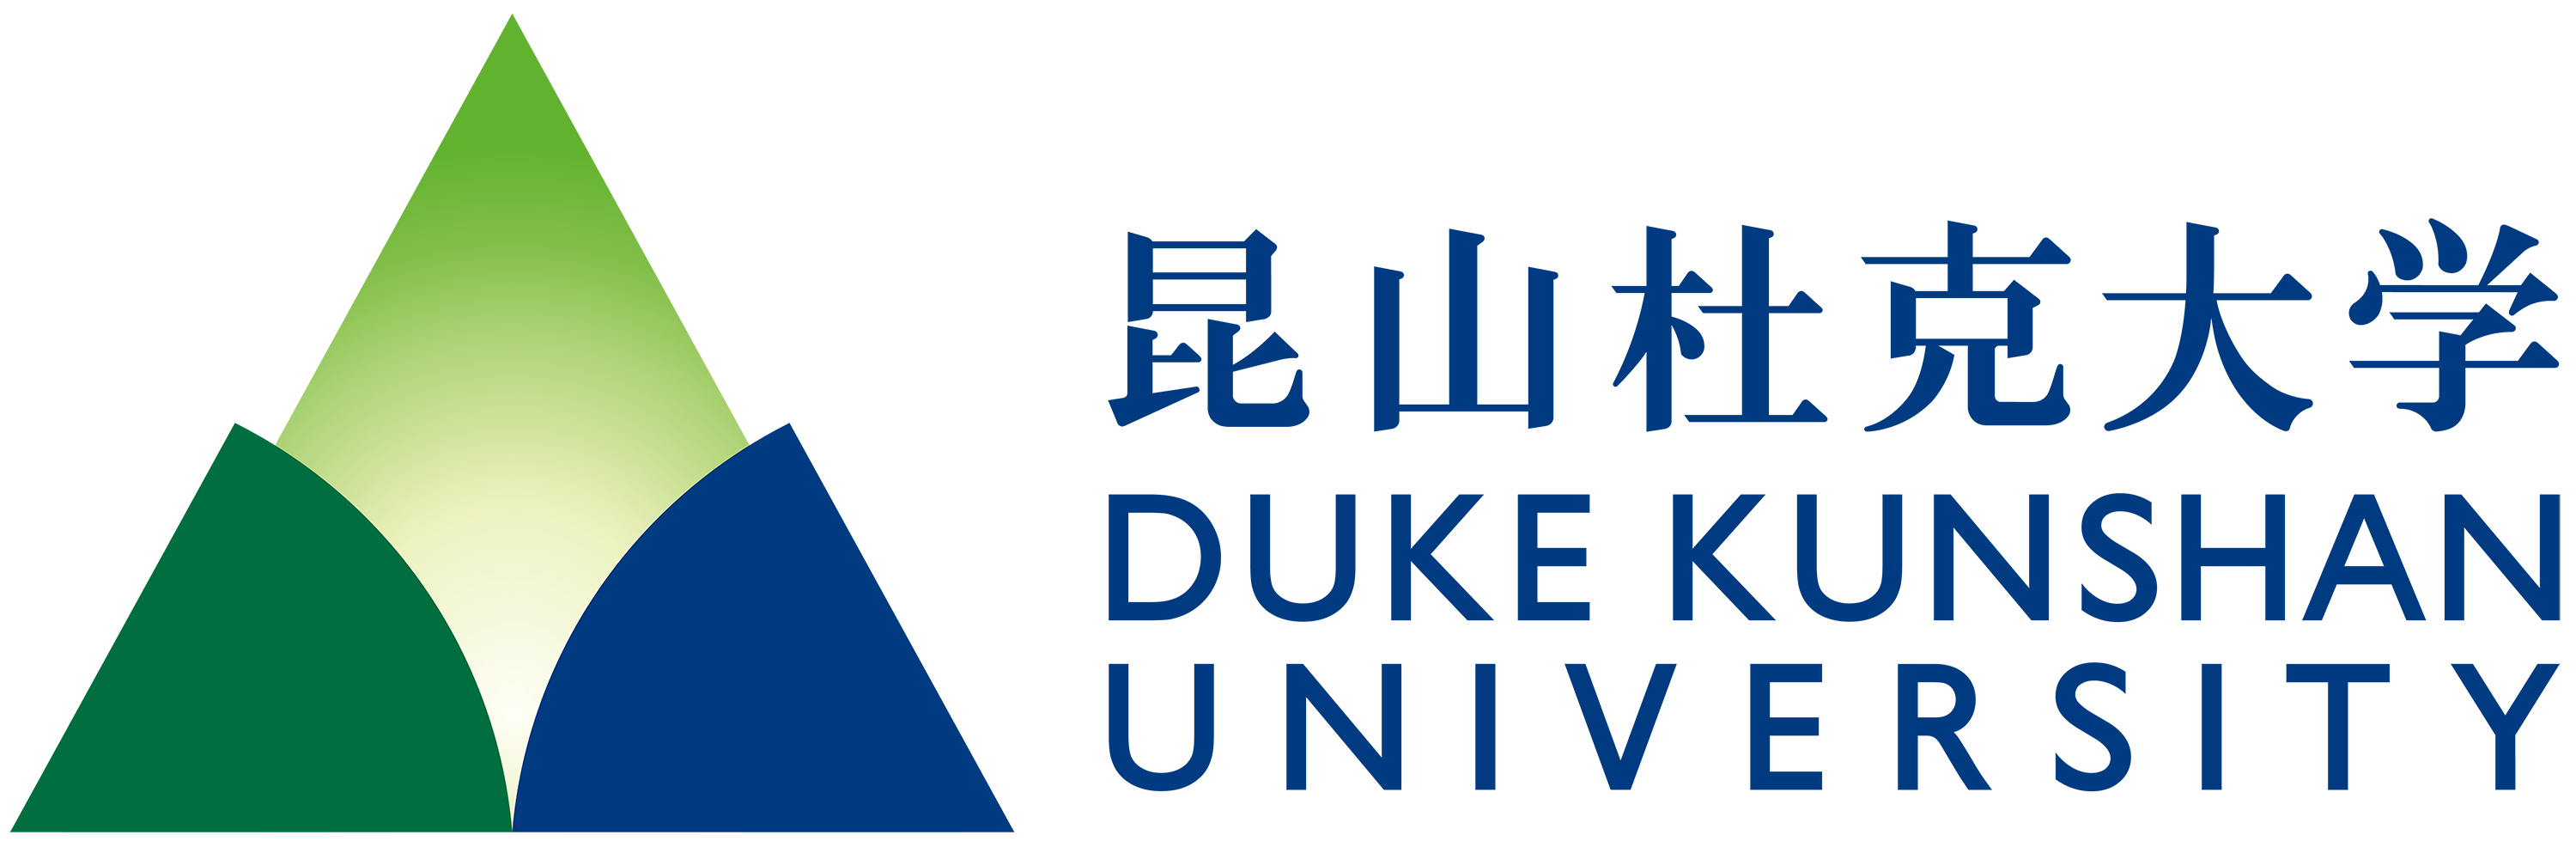 Duke Kunshan University logo - click to open web site